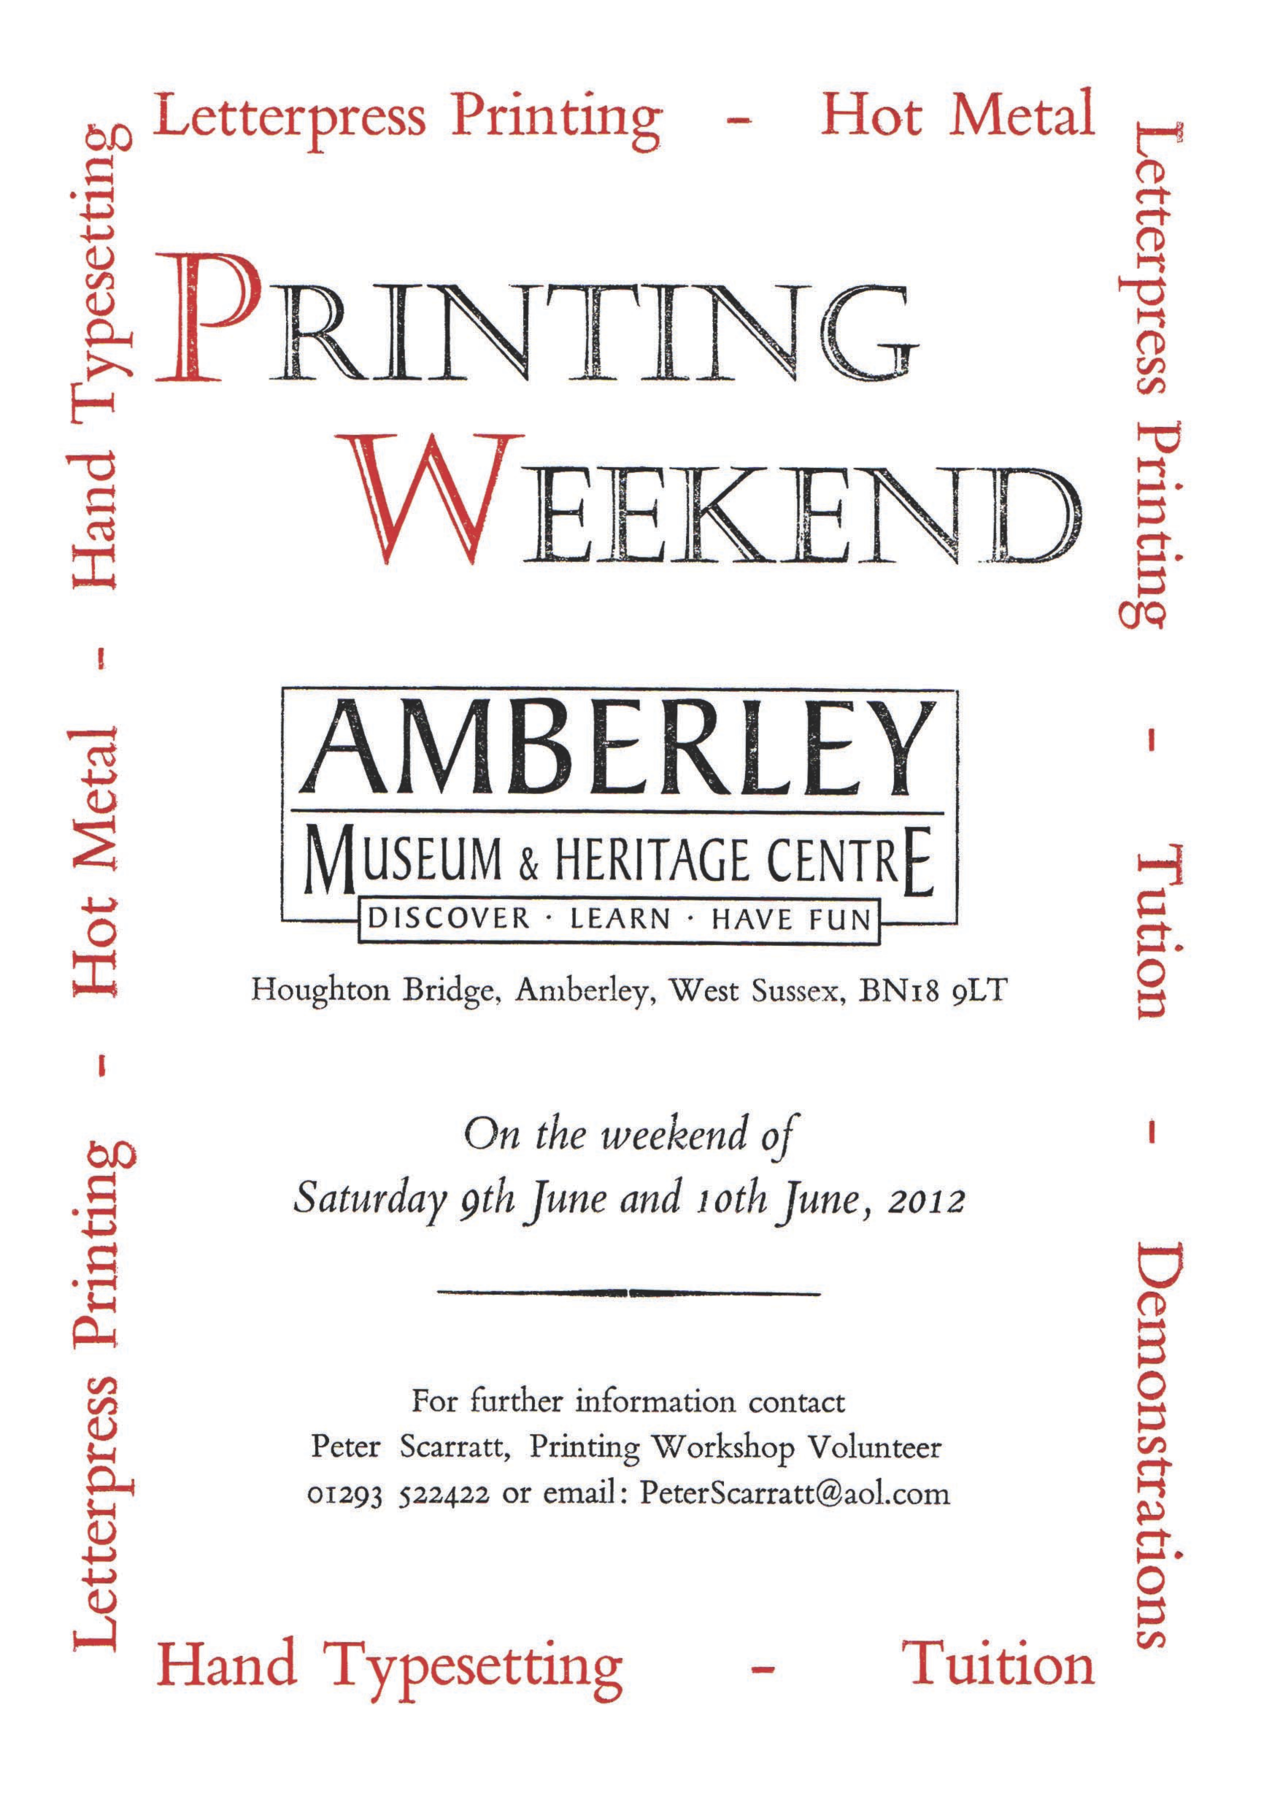 Come and see us at the Amberley Museum Printing Weekend, we'll be there all day on the Sunday.